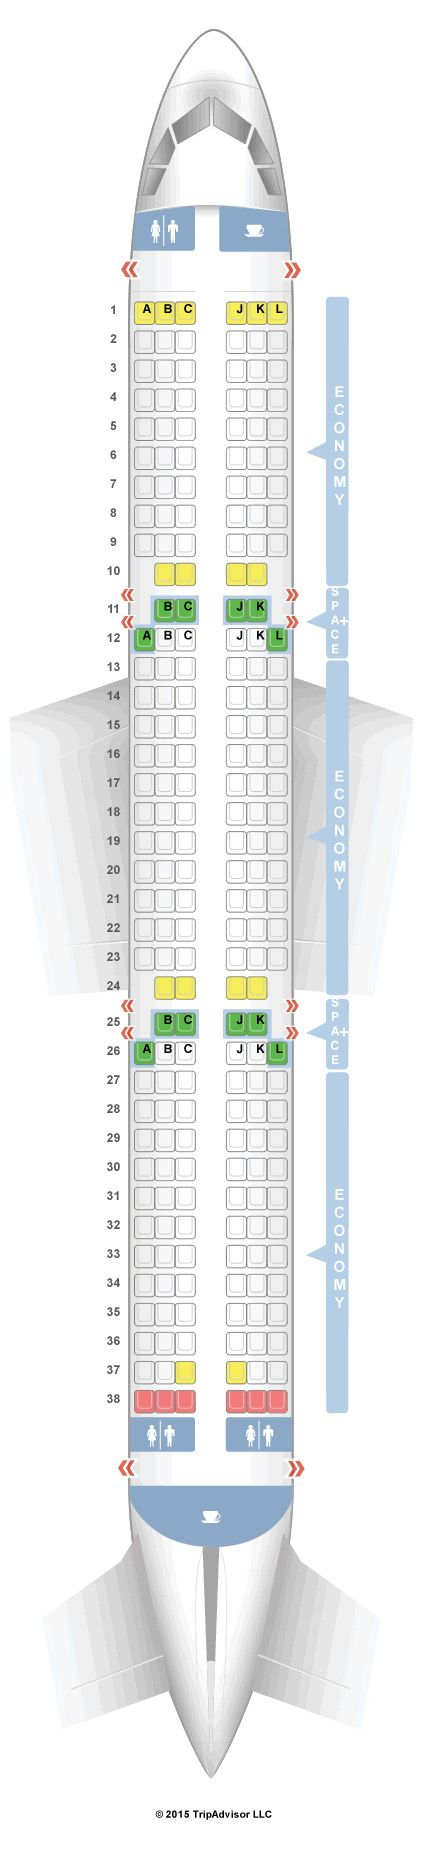 Ide Terbaik Airbus A Seating Chart Di Pinterest Boeing - Us airways a321 seat map